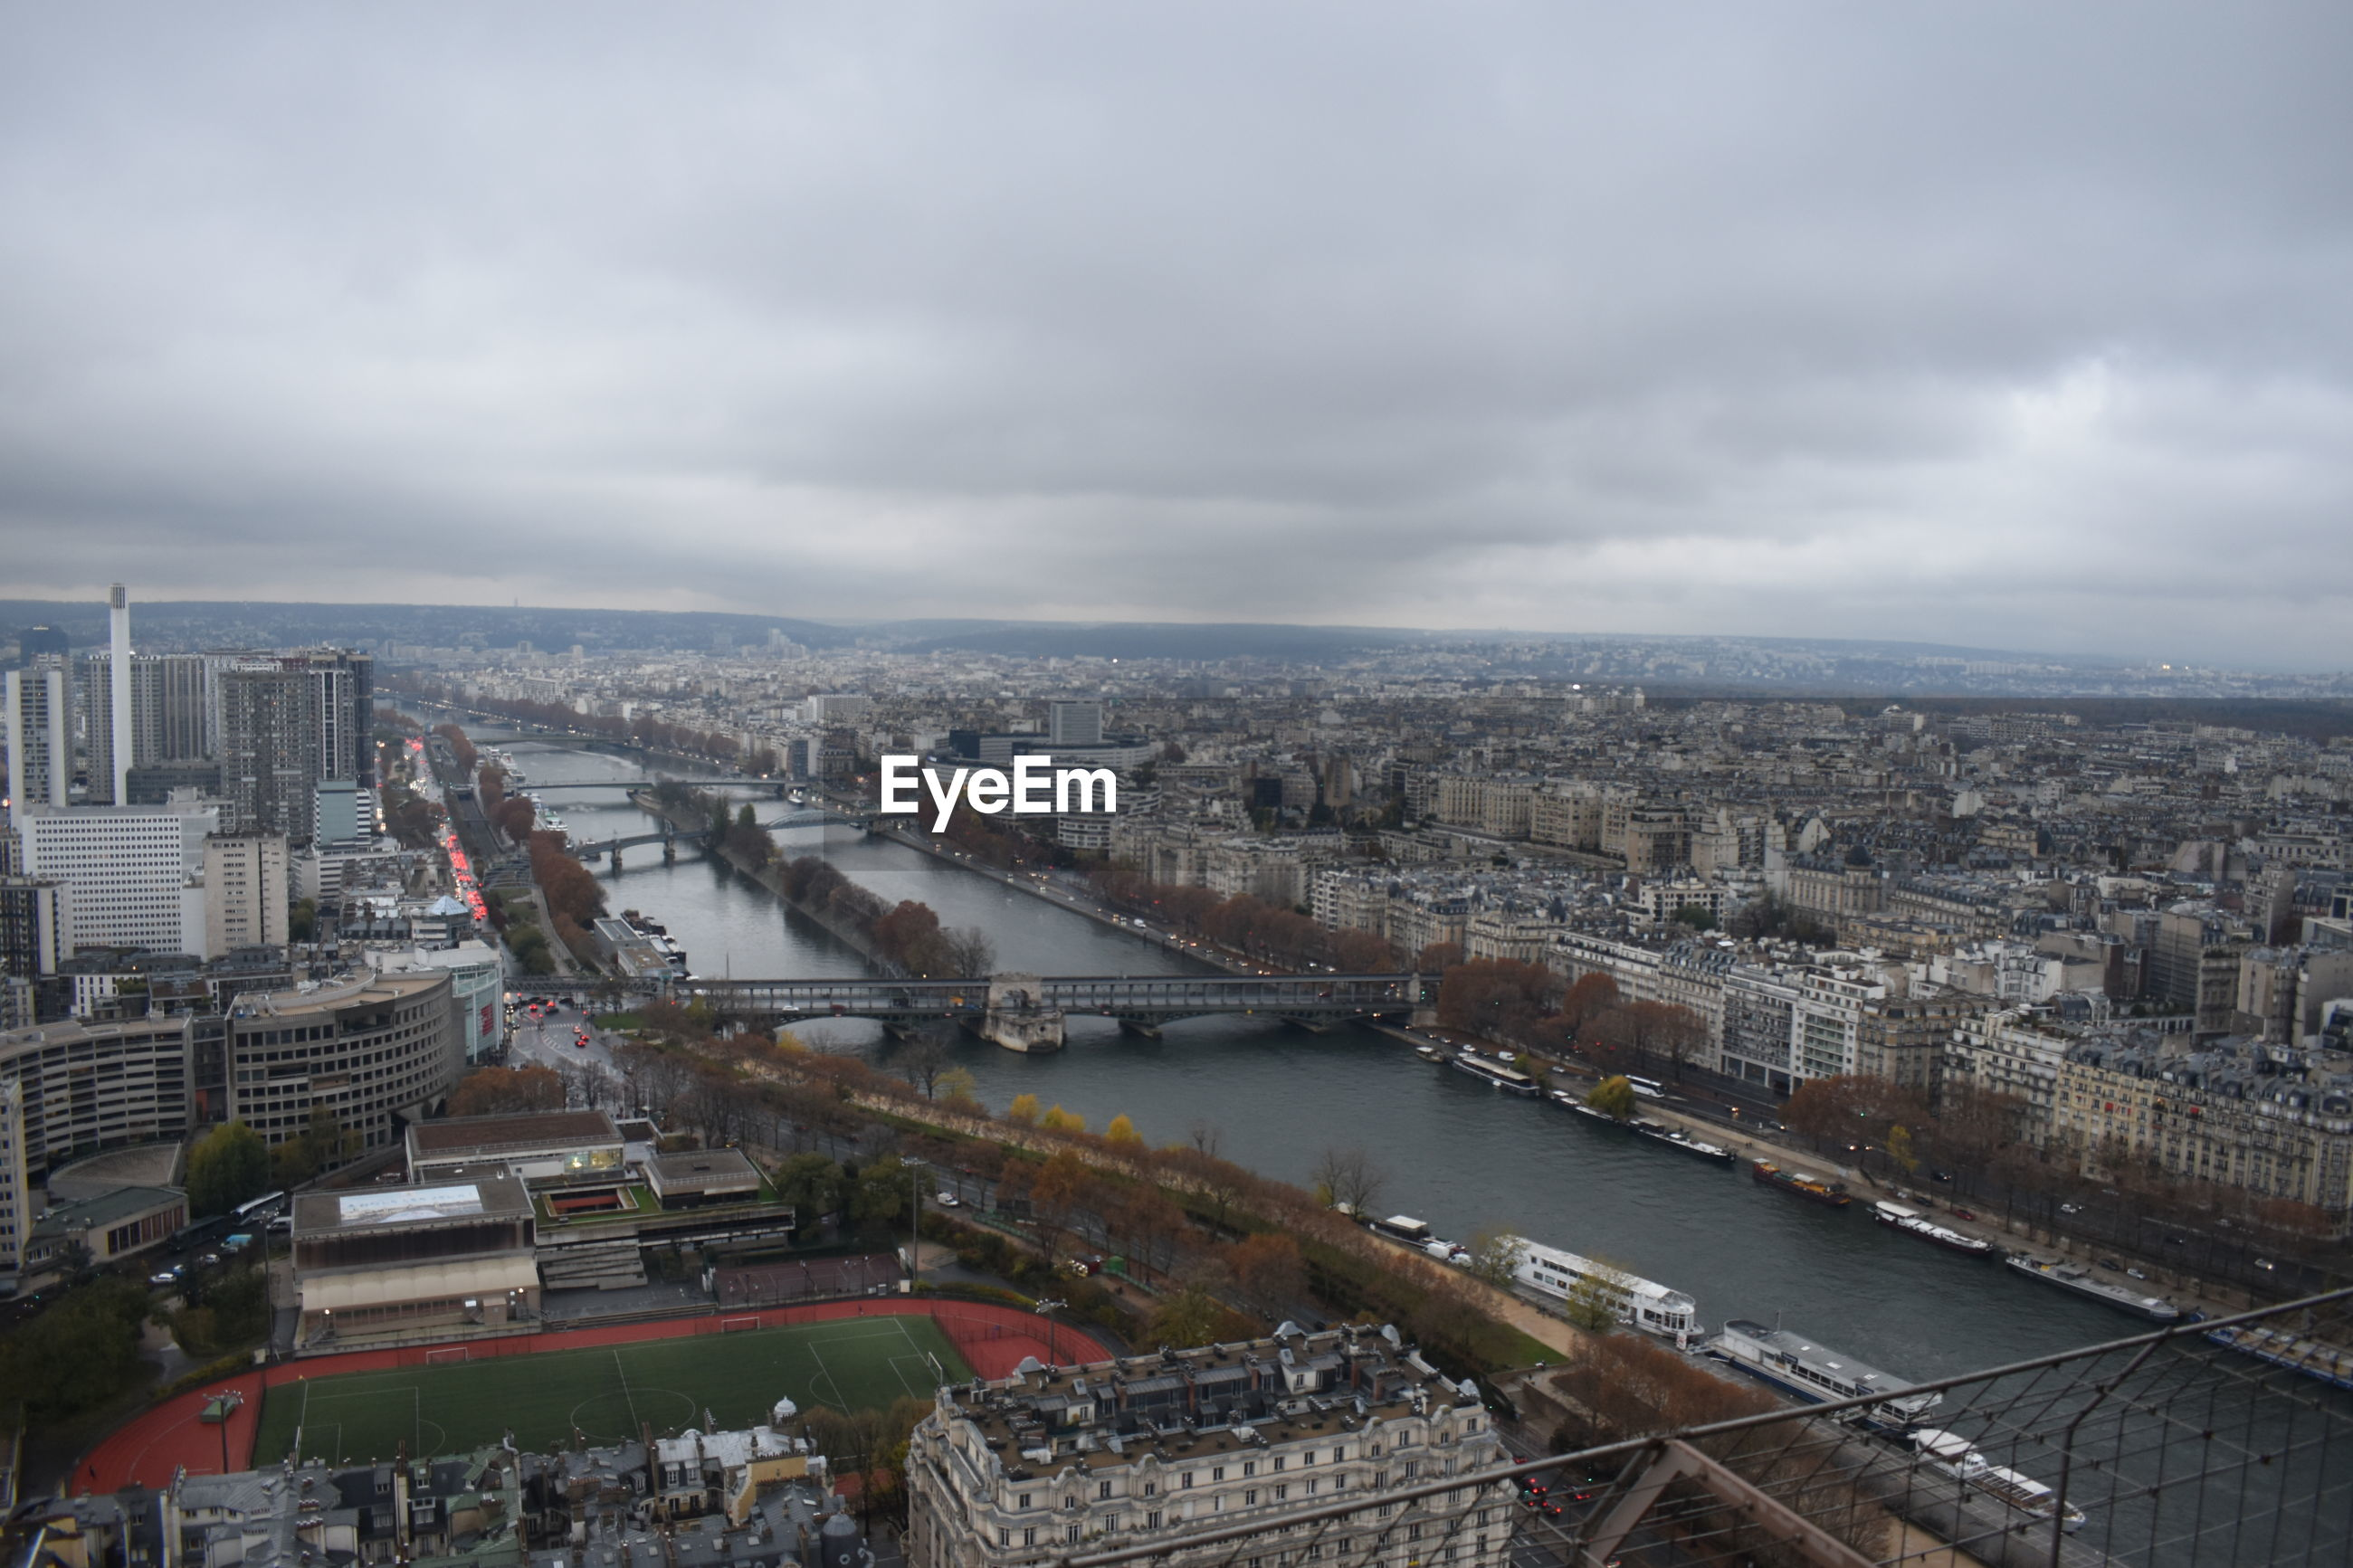 HIGH ANGLE VIEW OF RIVER BY BUILDINGS AGAINST SKY